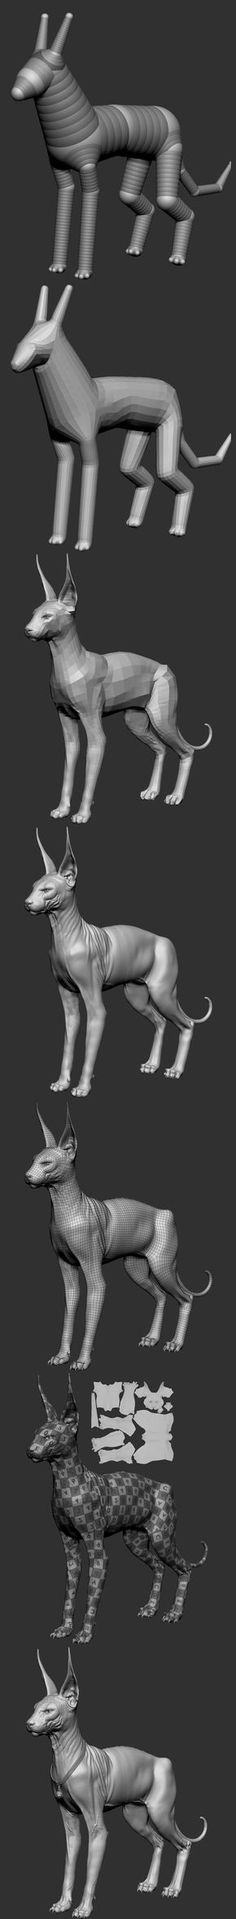 Great 3D model process shown here. It's helpful to look at this and see the transition from basic shapes into a highly detailed mesh.